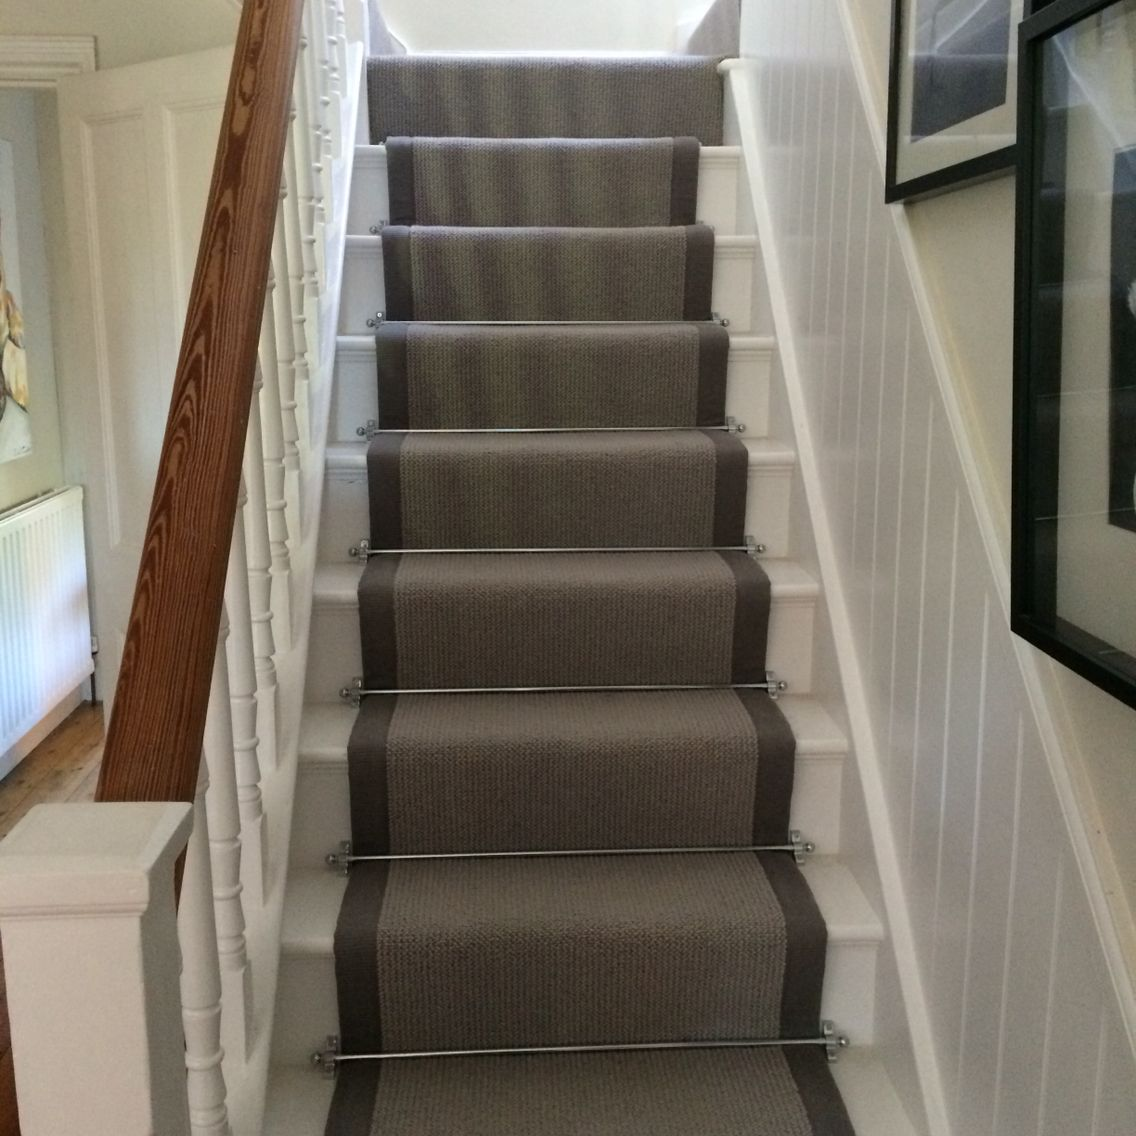 carpet runner stair bars photo - 1